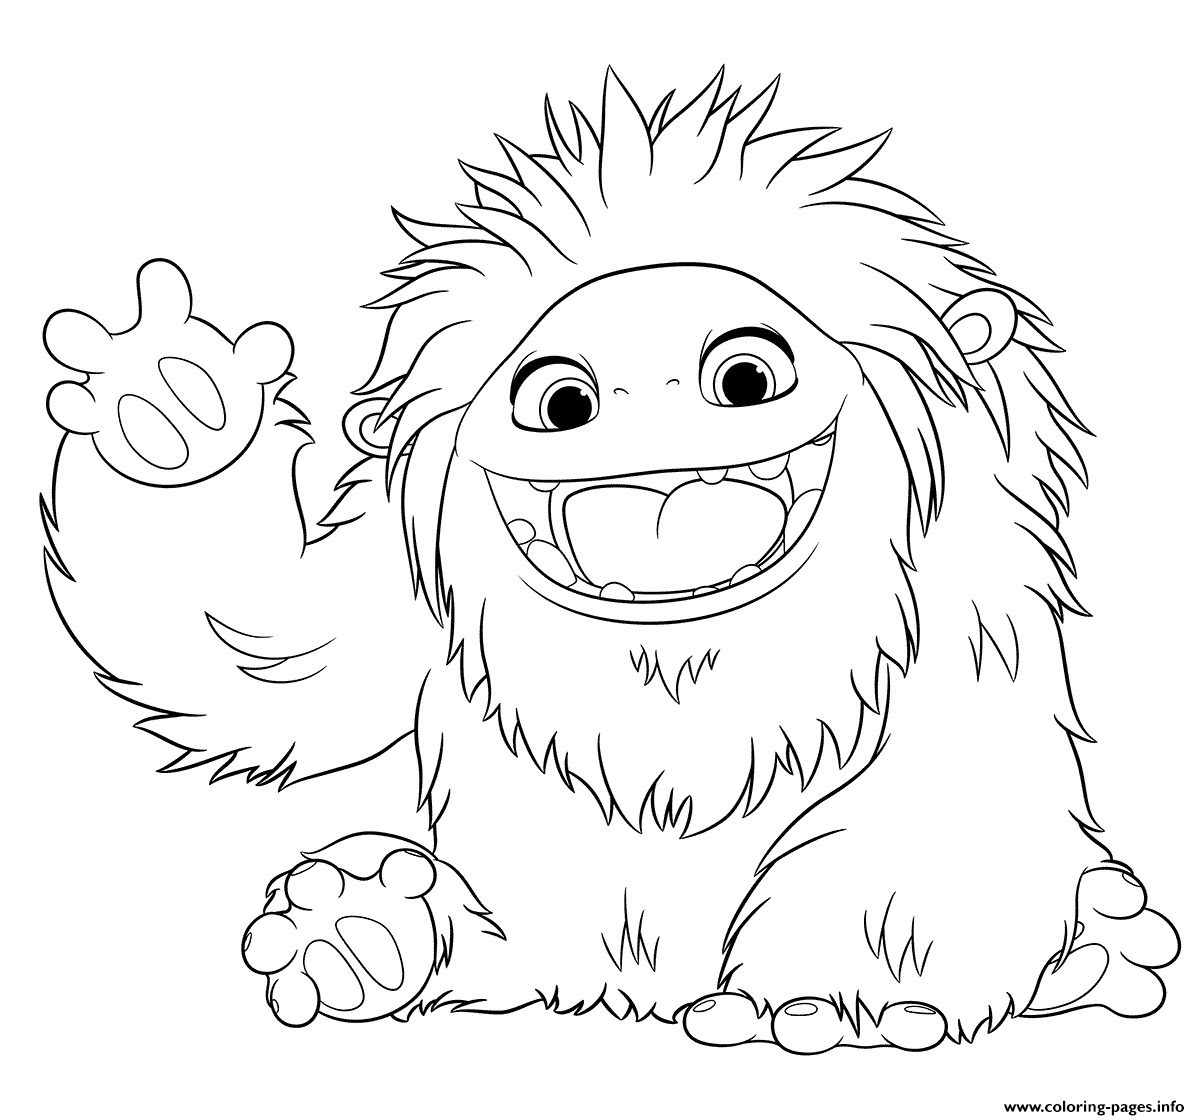 Abominable Yeti Kids Animation Coloring Pages Printable